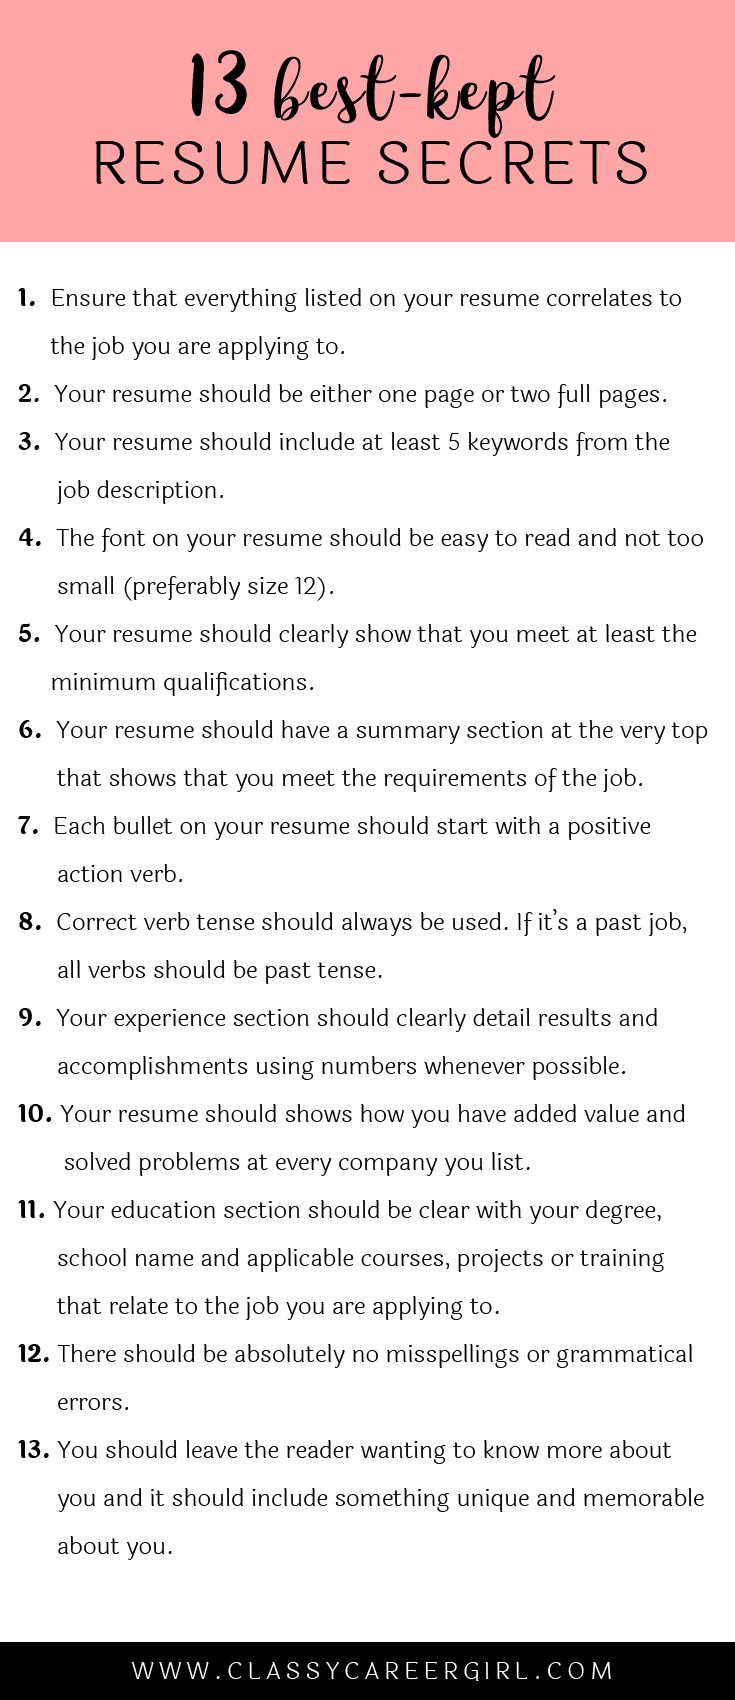 Picnictoimpeachus  Pleasant  Ideas About Resume On Pinterest  Cv Format Resume Cv And  With Hot Some Hiring Managers Will Toss Your Resume Out If You Dont Know These  With Awesome Good Words To Use On Resume Also Fashion Resumes In Addition Bad Resume Example And Creative Resume Designs As Well As Resume For Stay At Home Mom Returning To Work Additionally The Perfect Resume Format From Pinterestcom With Picnictoimpeachus  Hot  Ideas About Resume On Pinterest  Cv Format Resume Cv And  With Awesome Some Hiring Managers Will Toss Your Resume Out If You Dont Know These  And Pleasant Good Words To Use On Resume Also Fashion Resumes In Addition Bad Resume Example From Pinterestcom